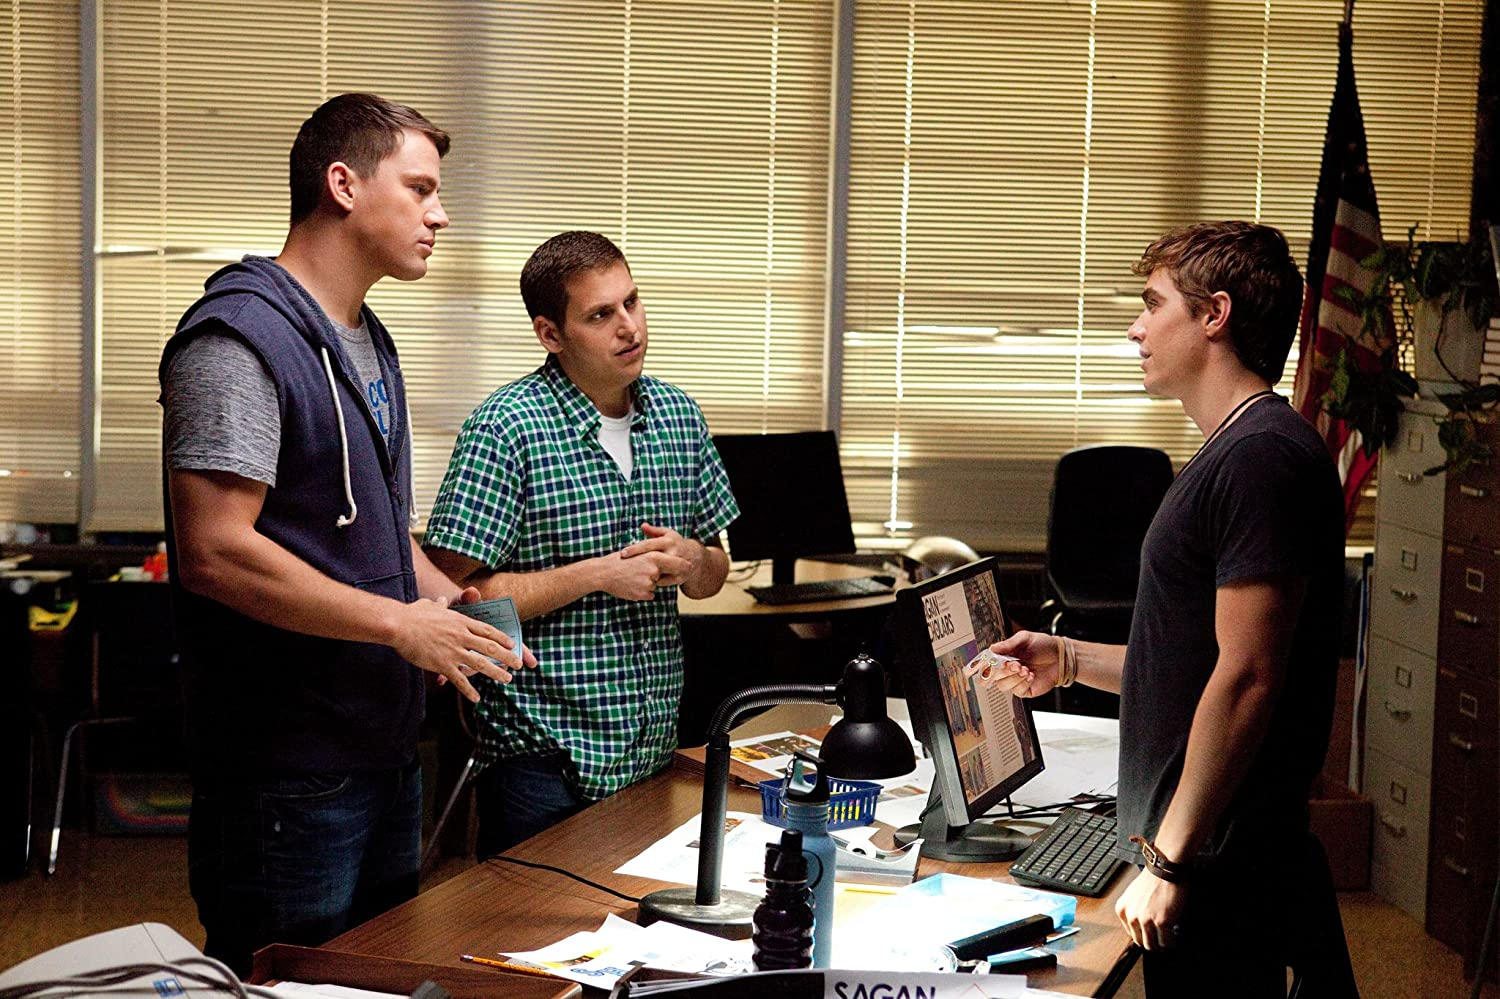 Channing Tatum, Jonah Hill, and Dave Franco in 21 Jump Street (2012)